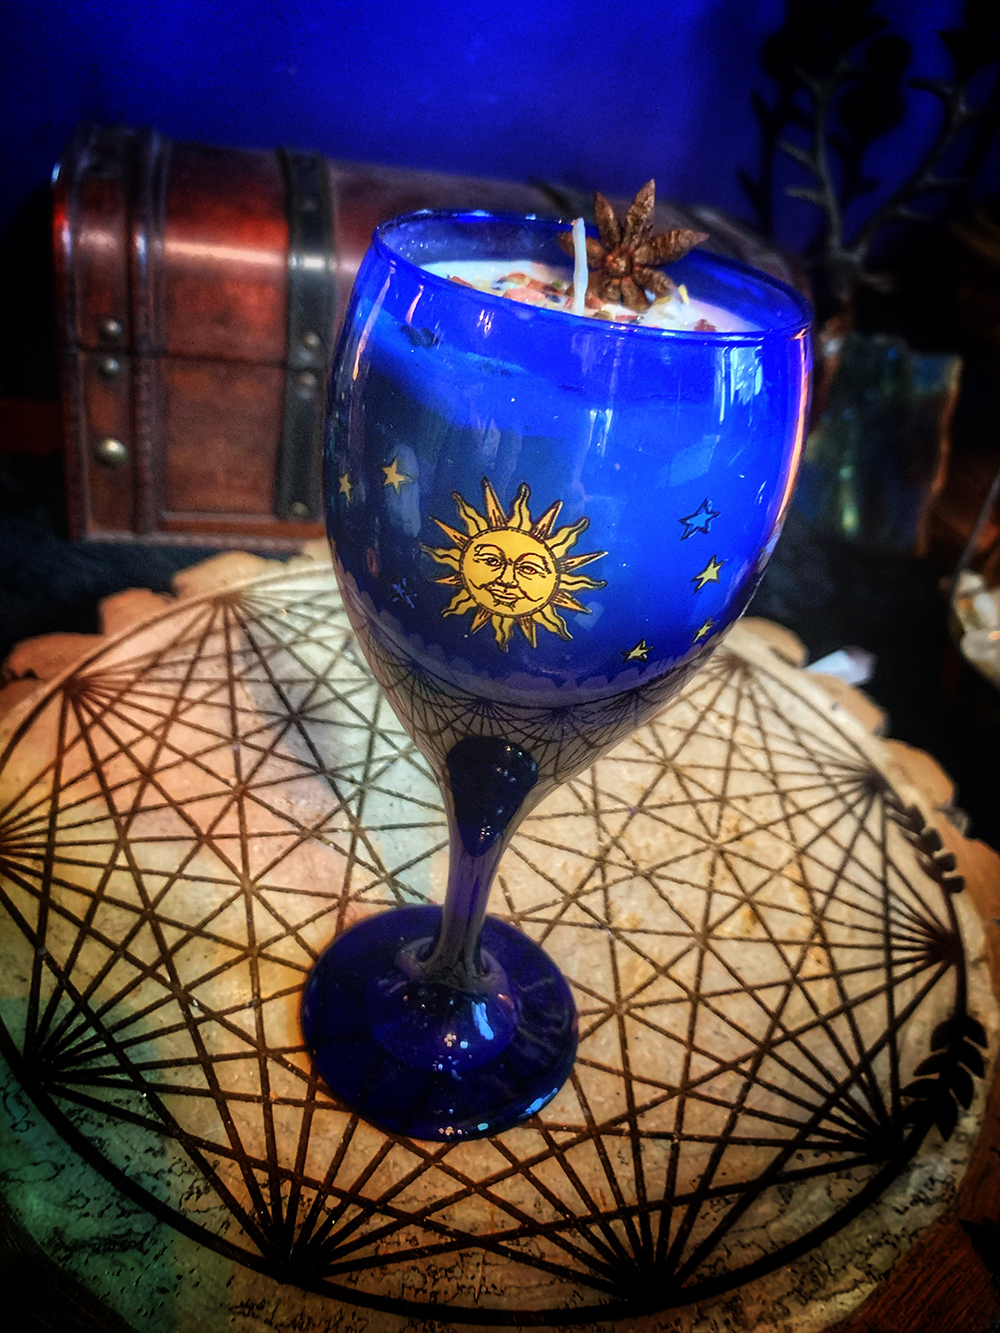 Psychic Visions Candle Vintage